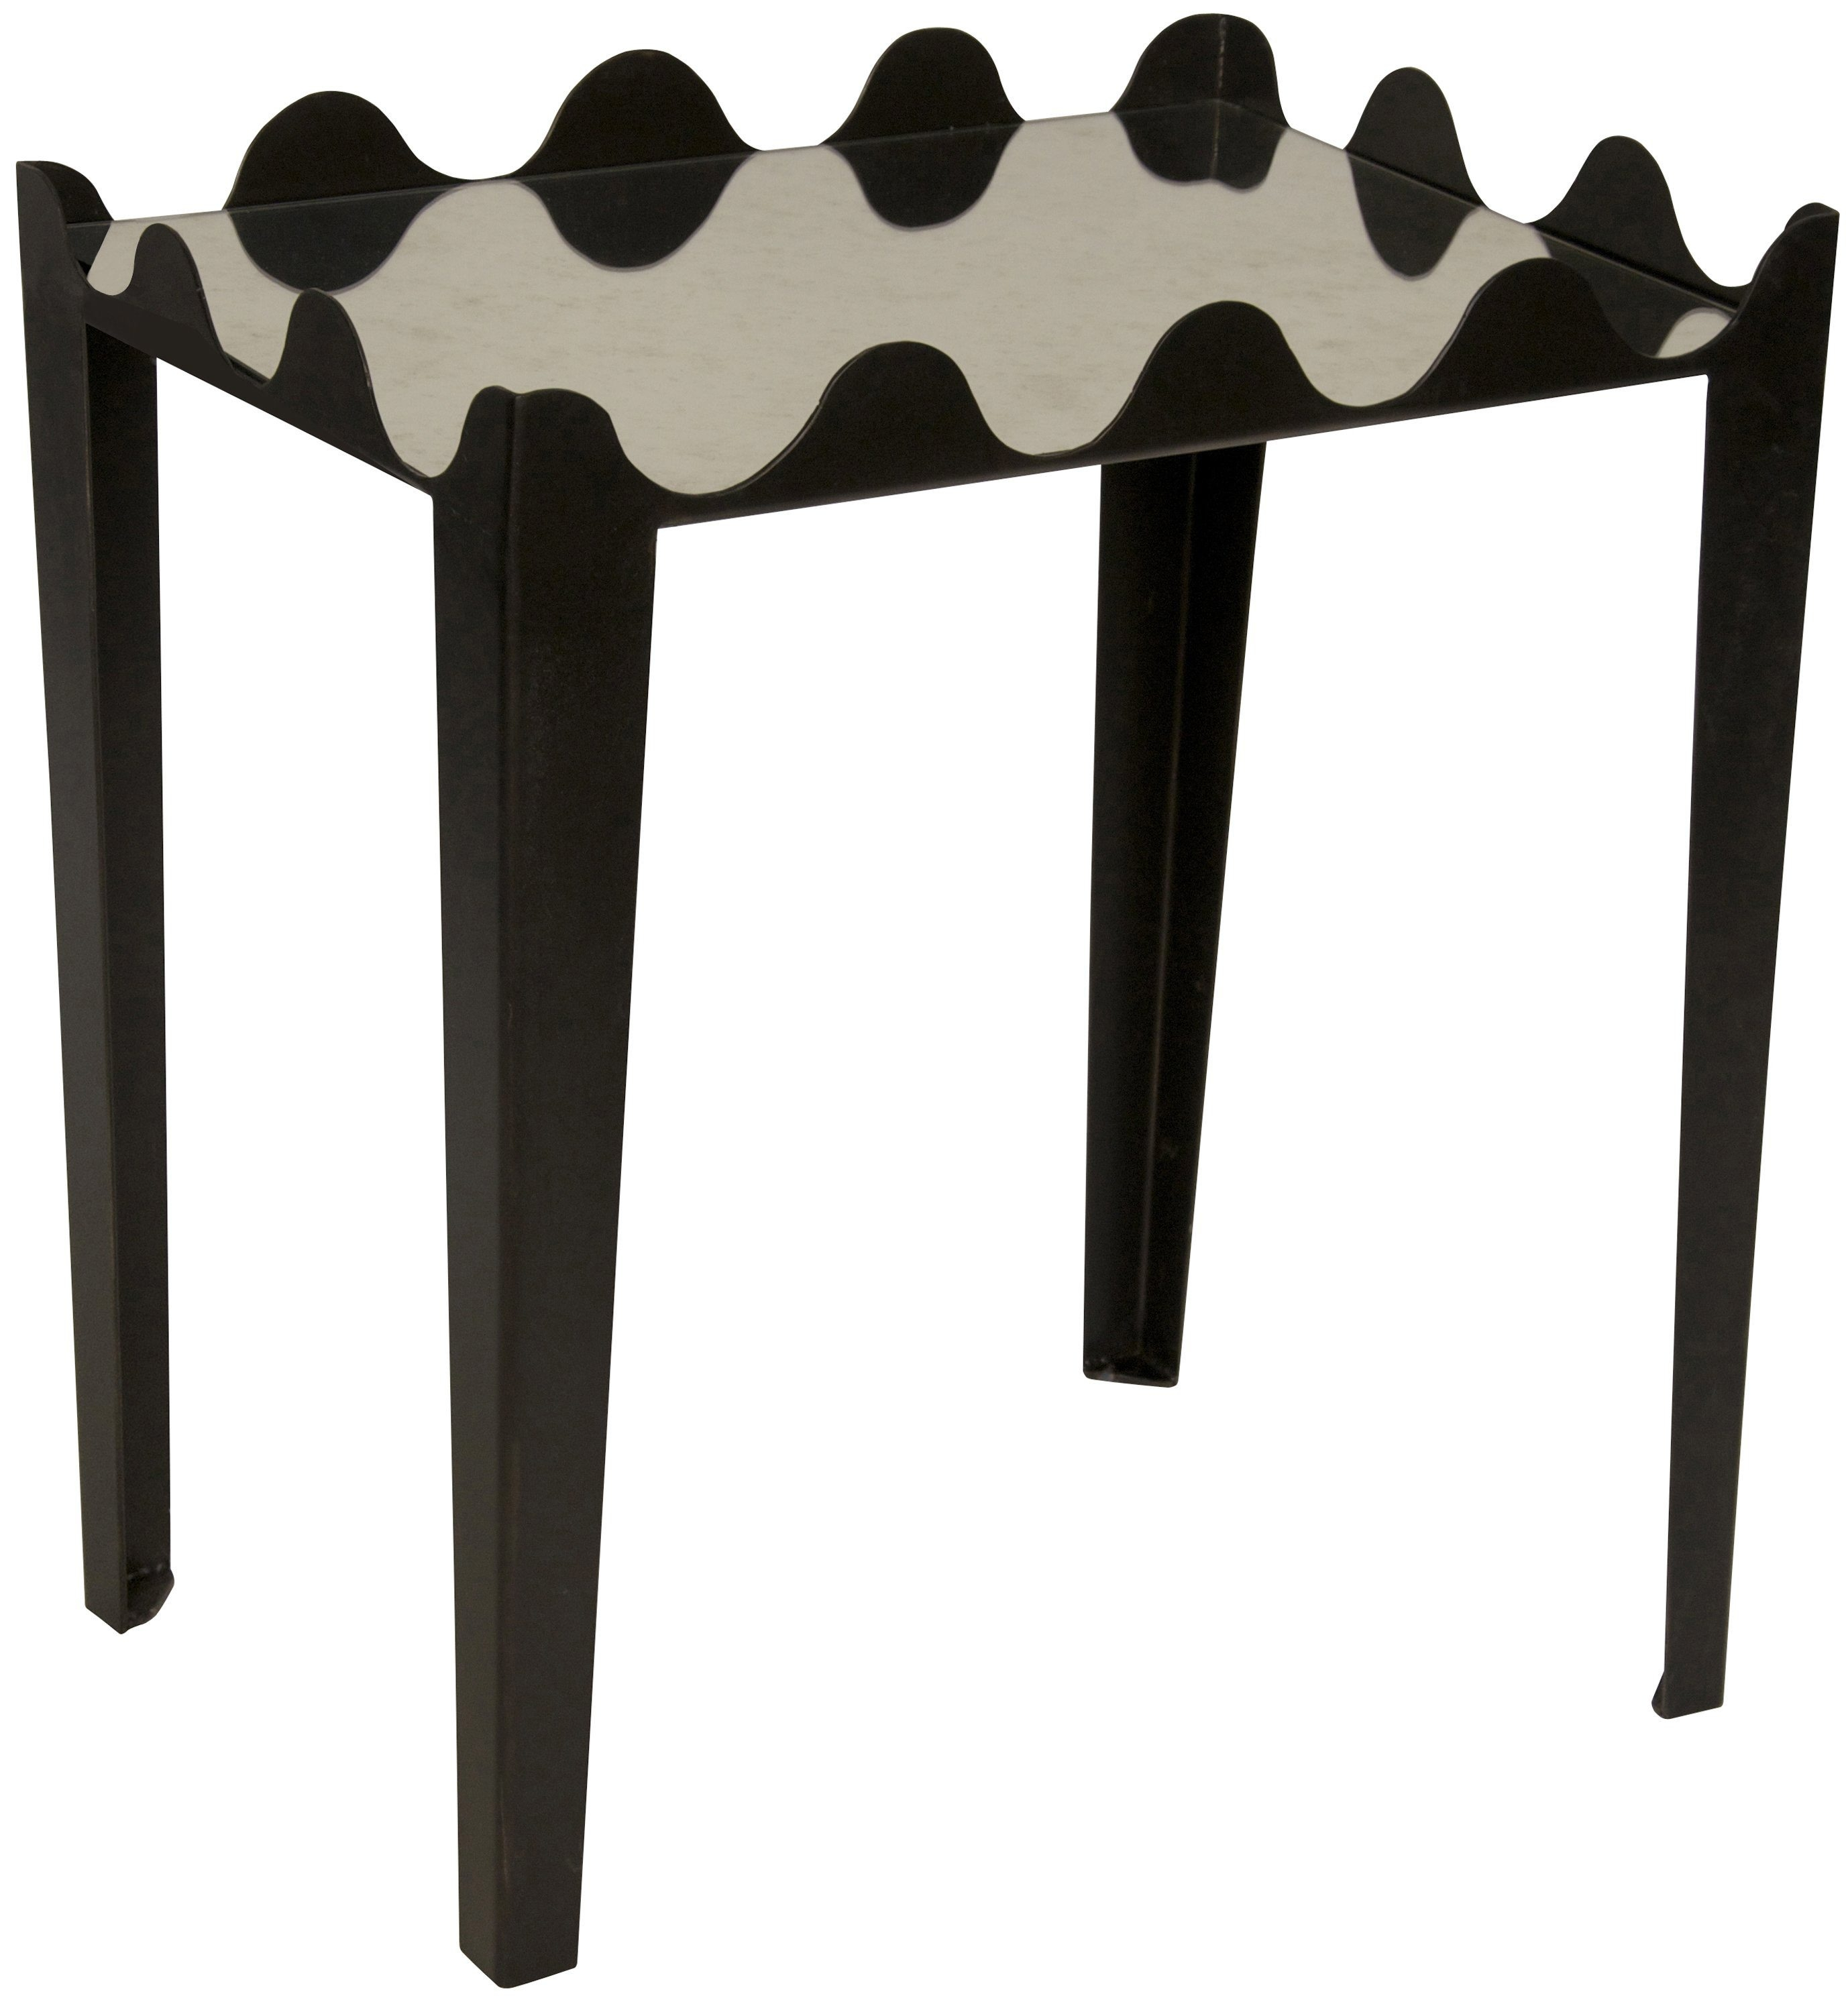 New designs from the Las Vegas summer furniture market include the Swelle Side Table. (MCT)